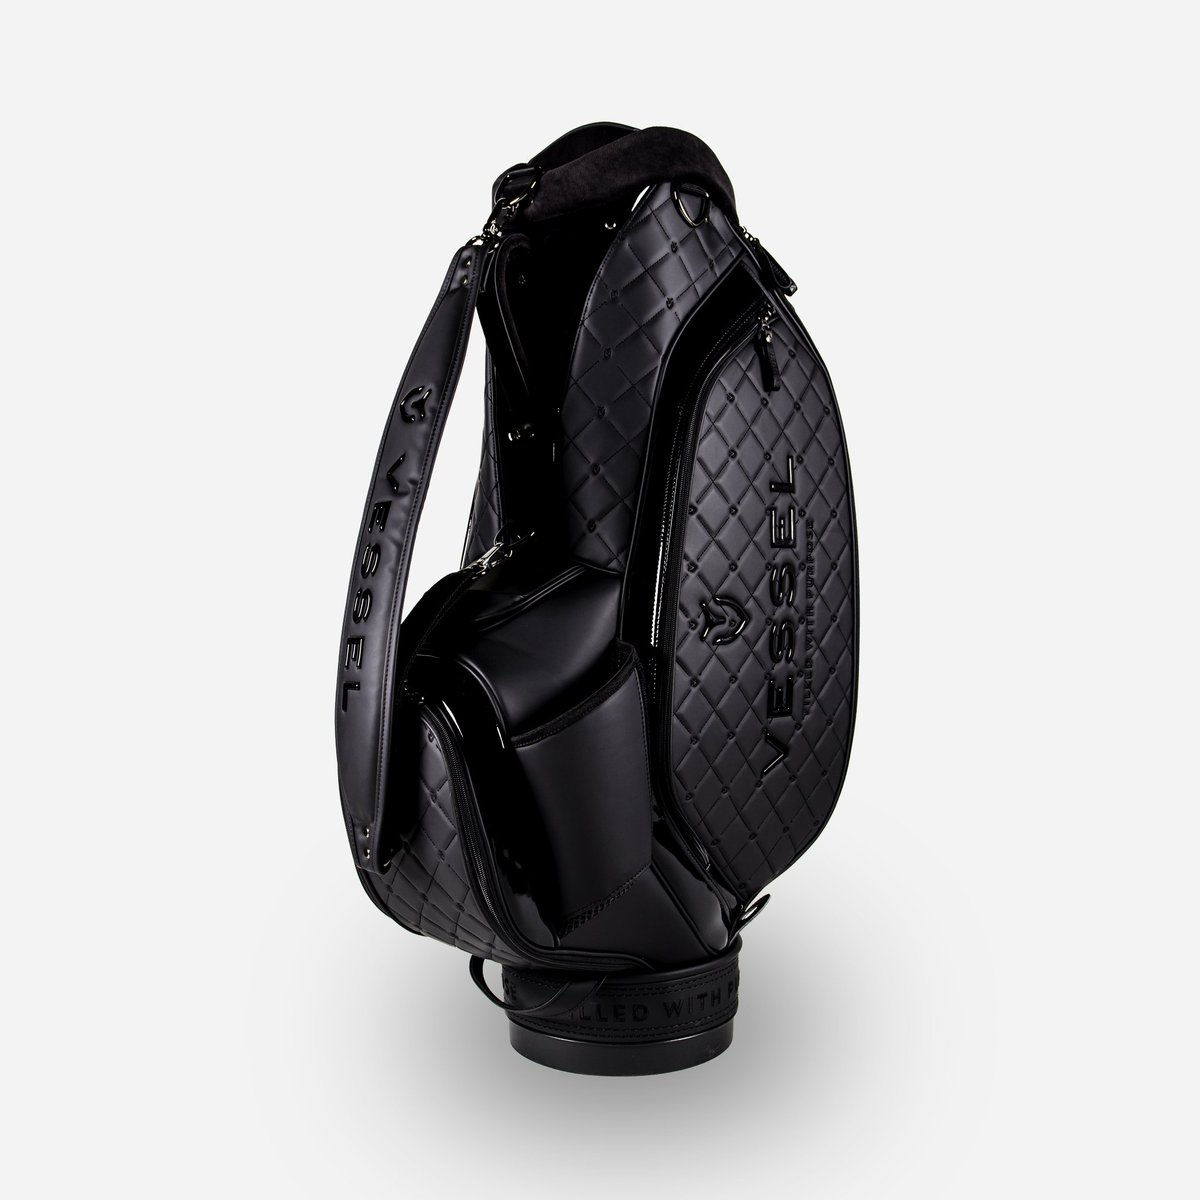 away luggage limited edition 2018